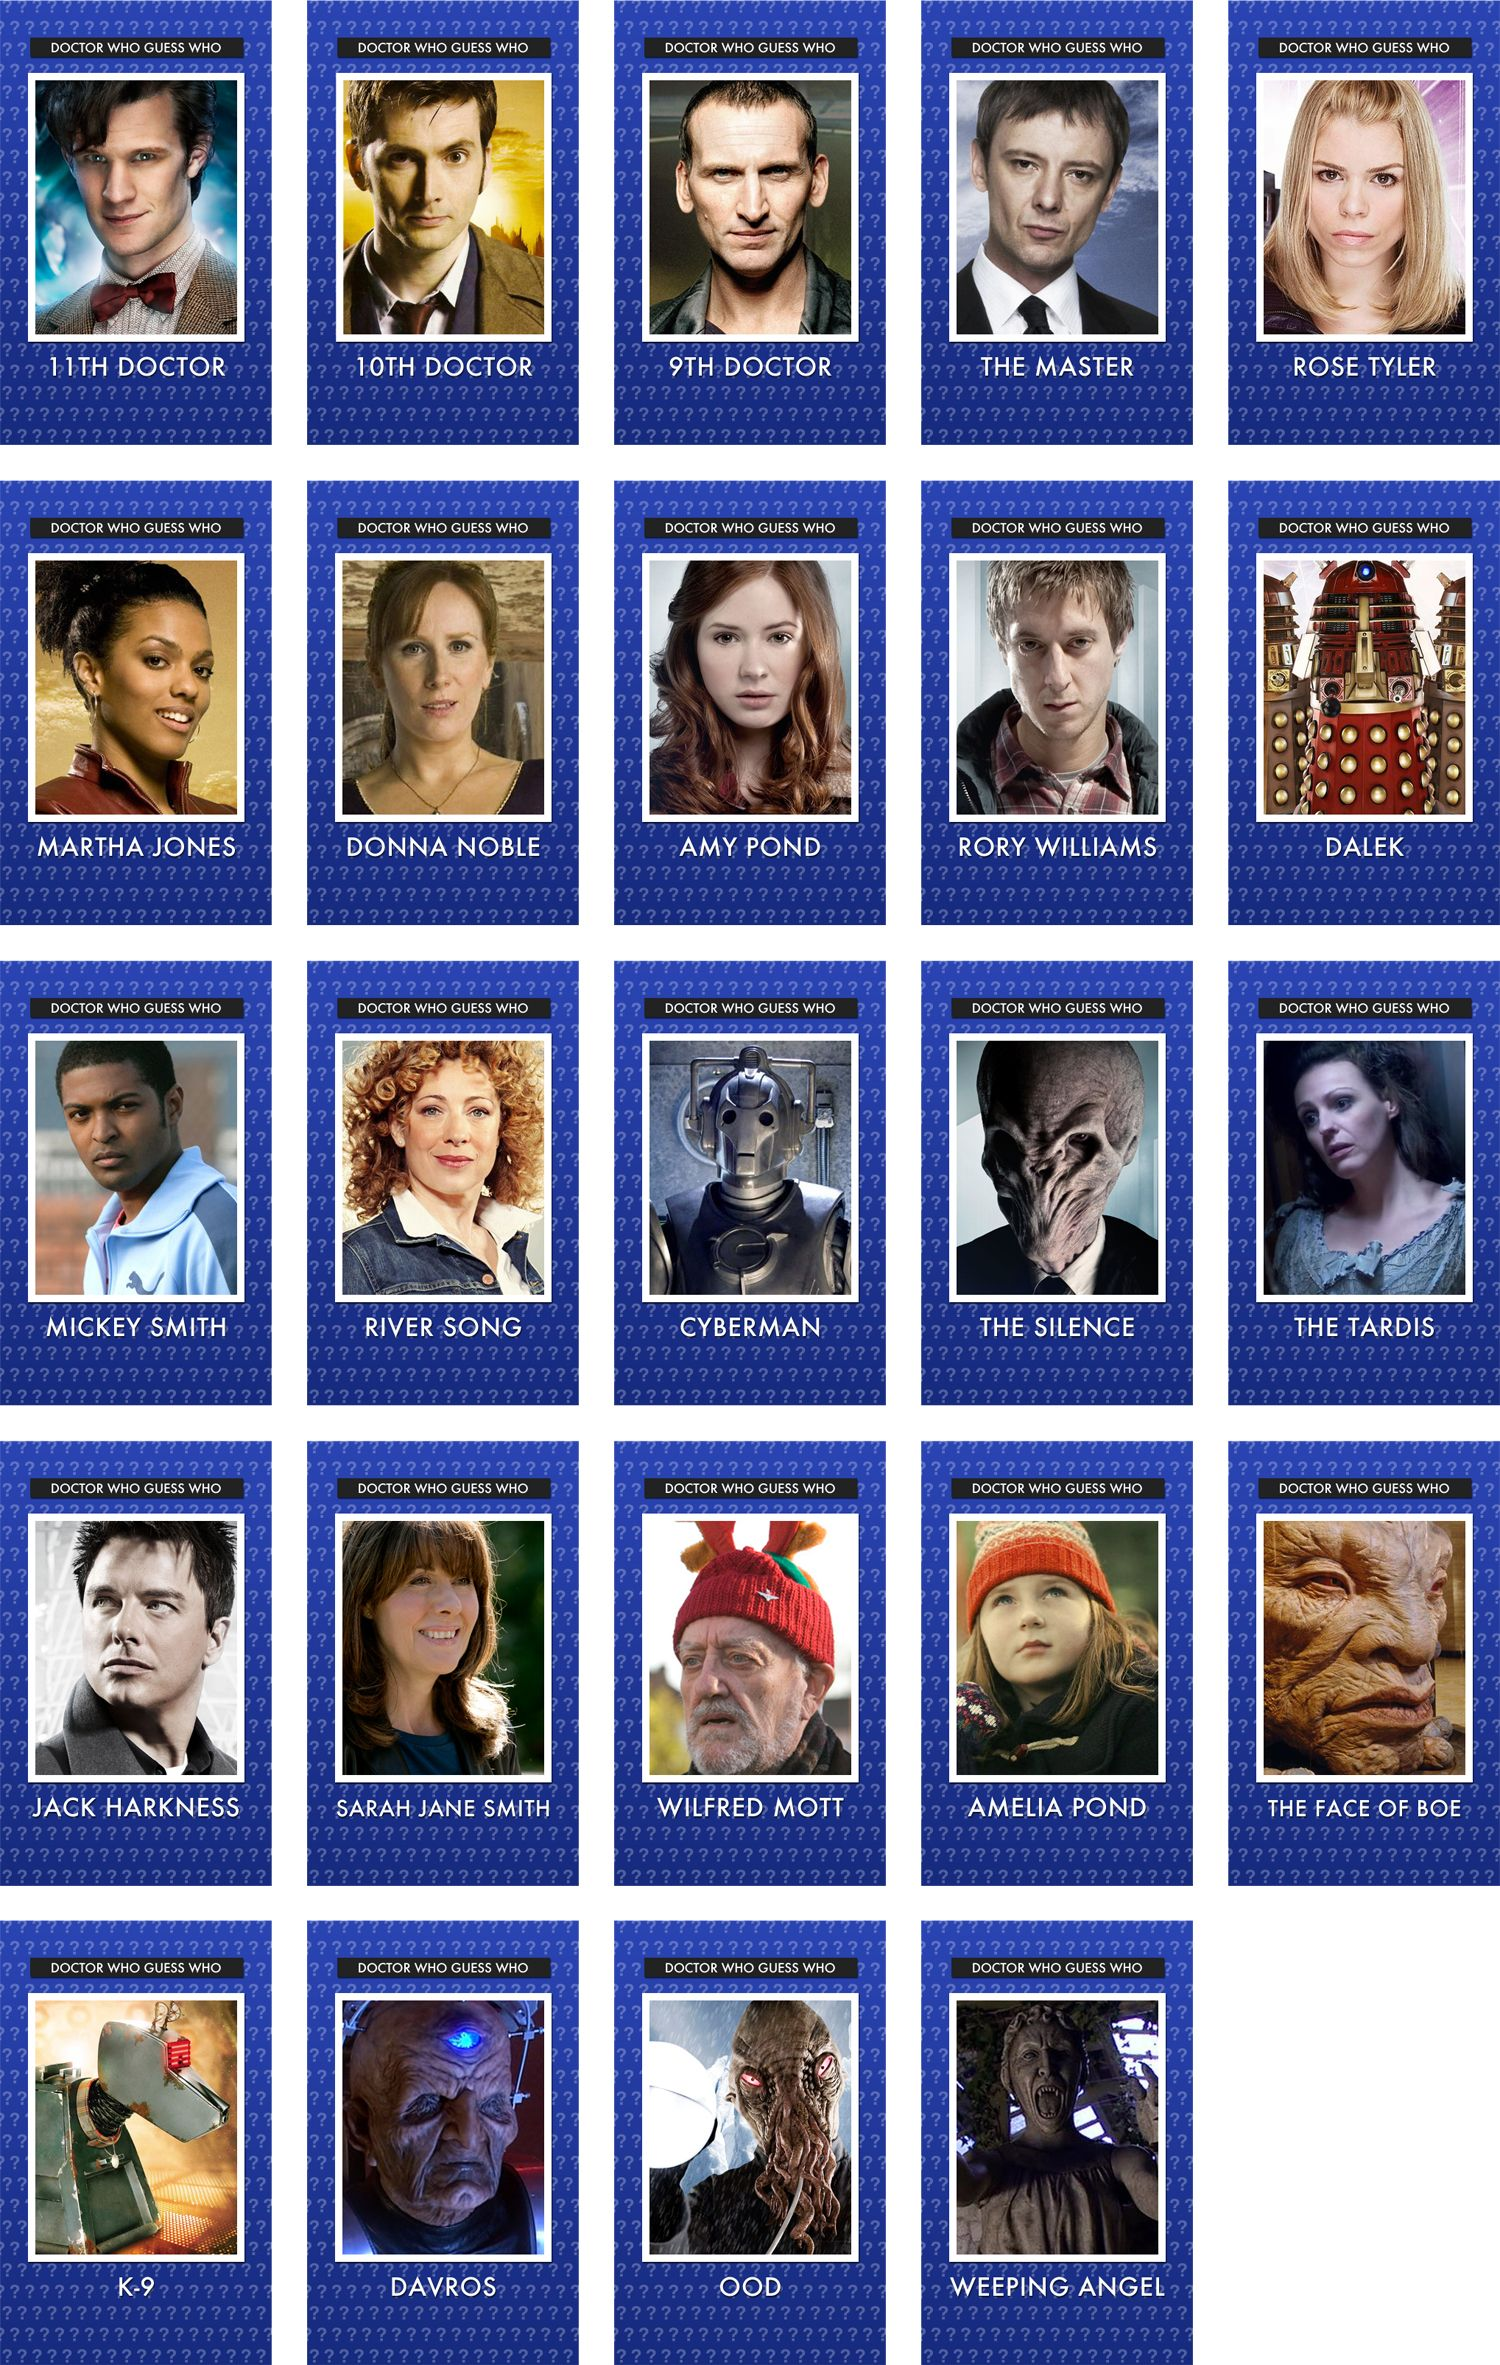 Pin By Karen Kavett On Doctor Who Guess Who Set In